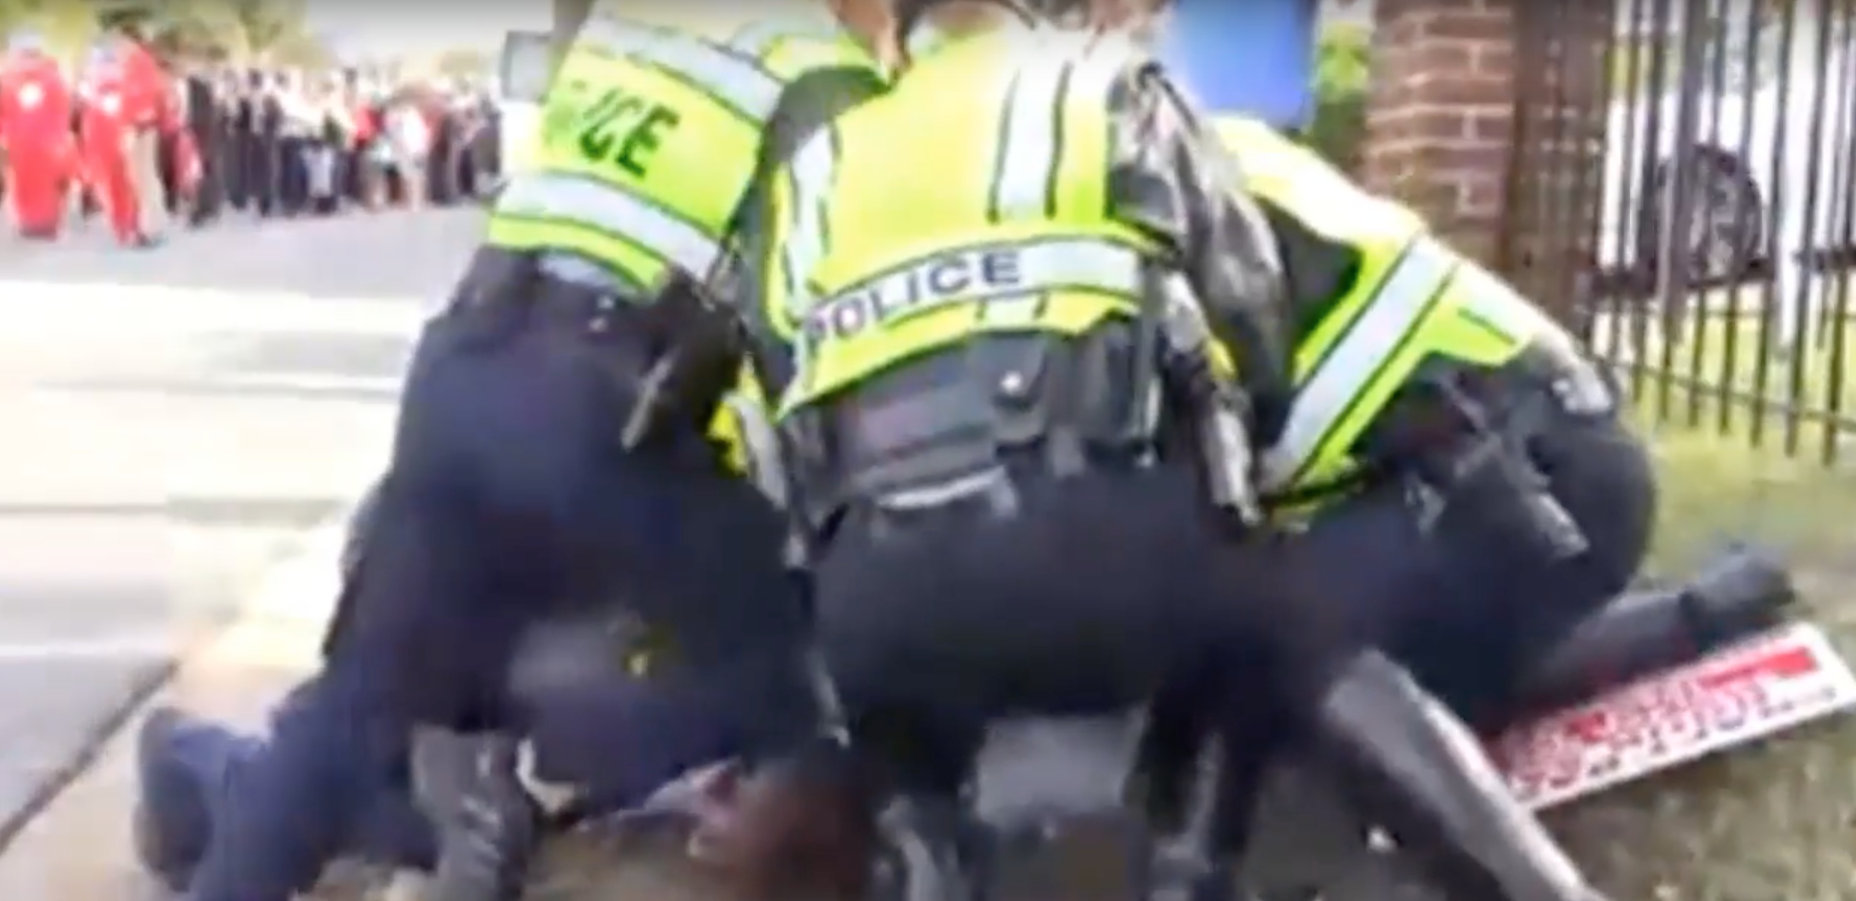 Well, this is going well: Virginia cops beat and arrest a journalist for asking questions and, um, cursing